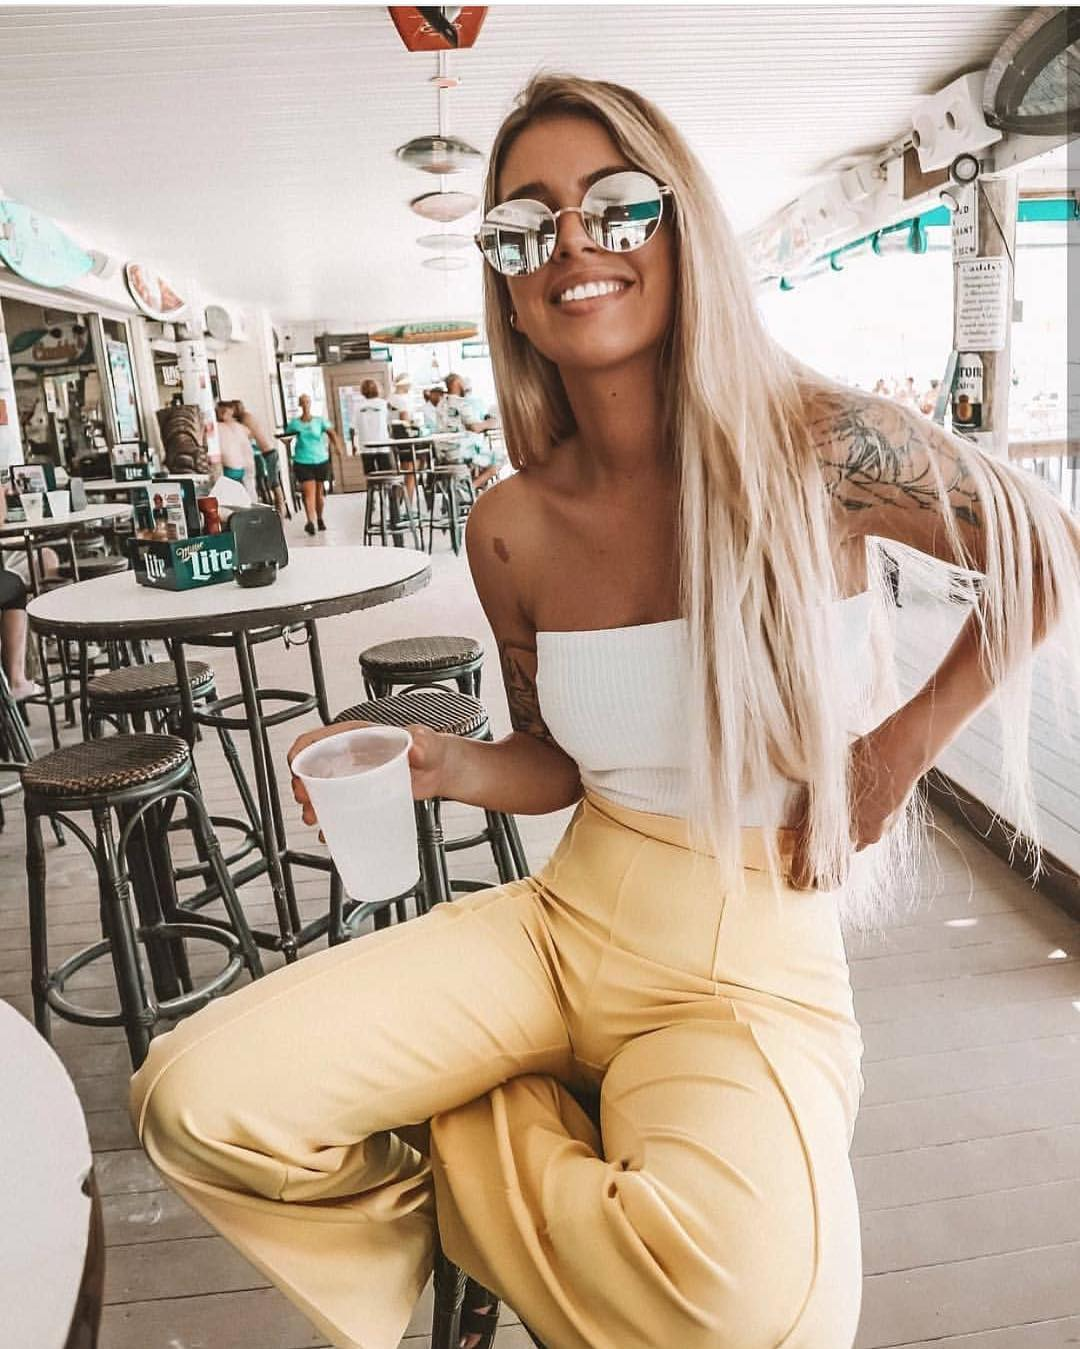 Strapless White Bodysuit And Pastel Yellow Pants For Summer Vacation 2020